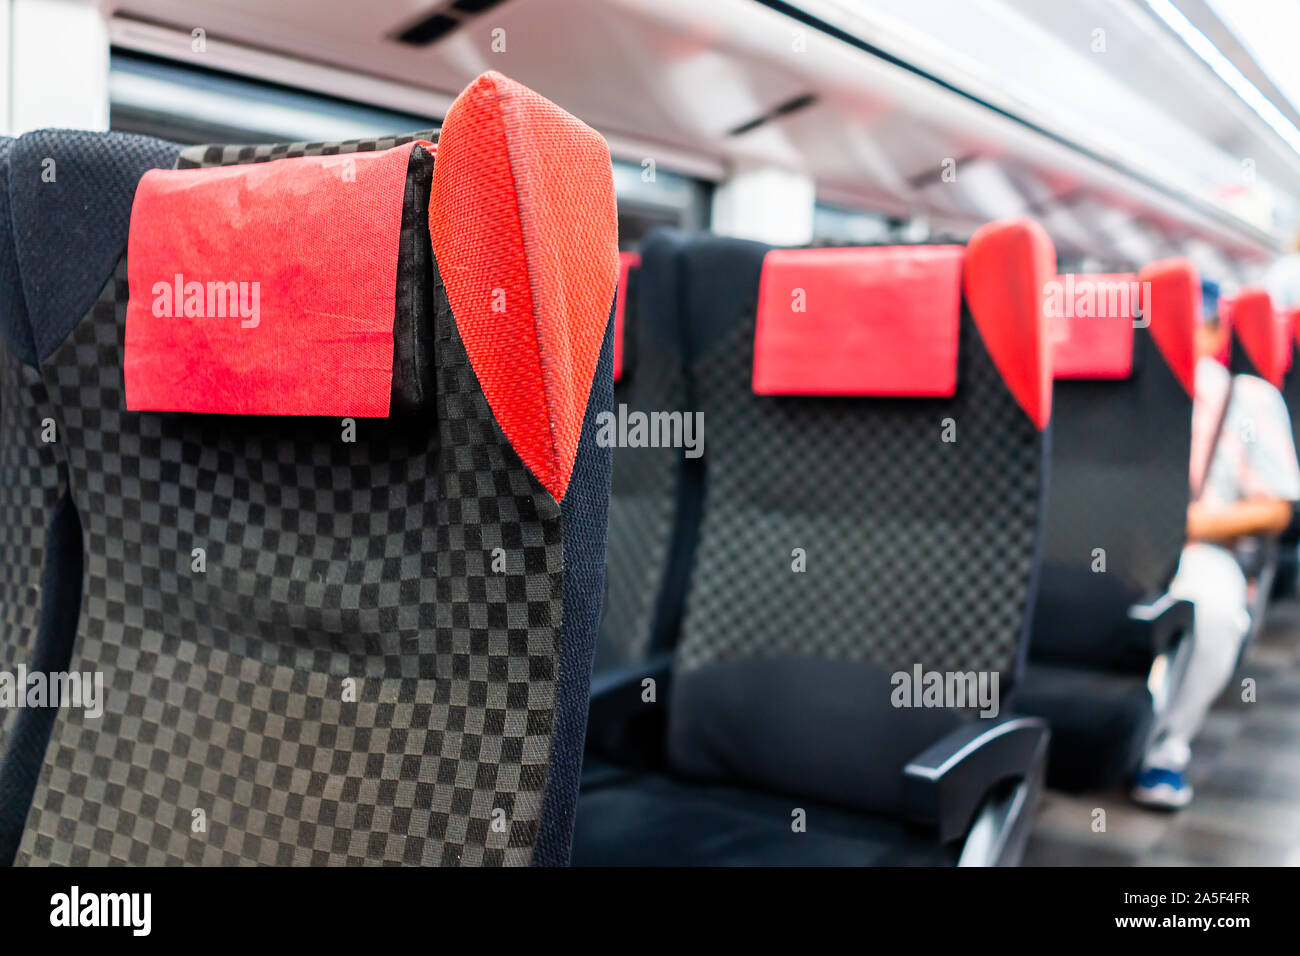 Empty red comfortable chairs seats row closeup in aisle in subway train interior inside with person sitting in background and modern comfy seating Stock Photo